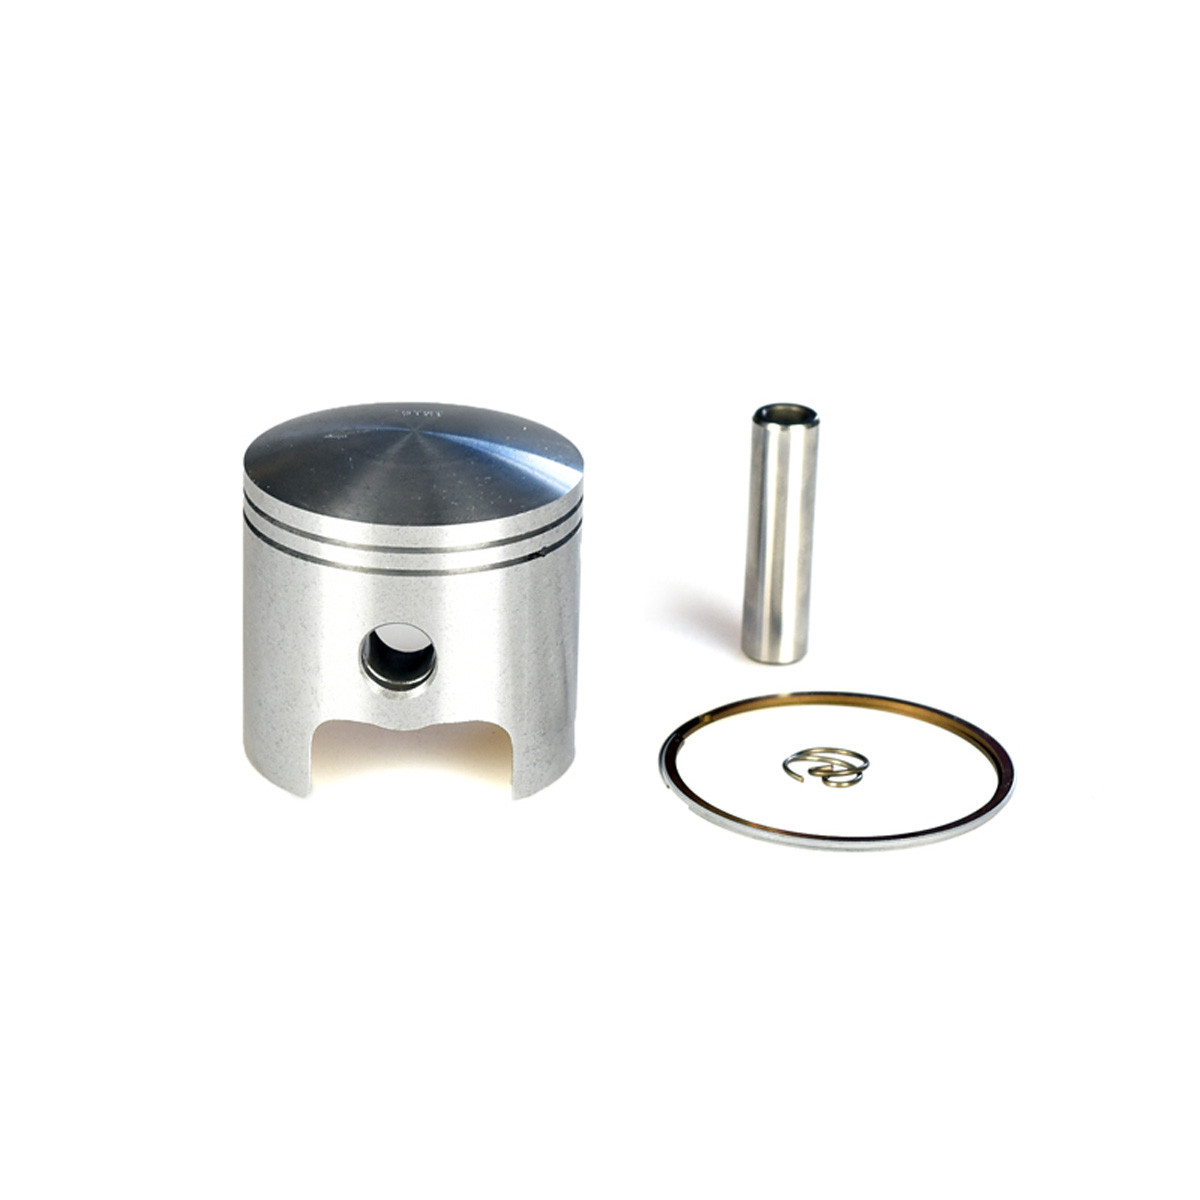 Piston PEUGEOT HONDA SUZUKI DERBI 2T D.46mm à 48mm - BARIKIT